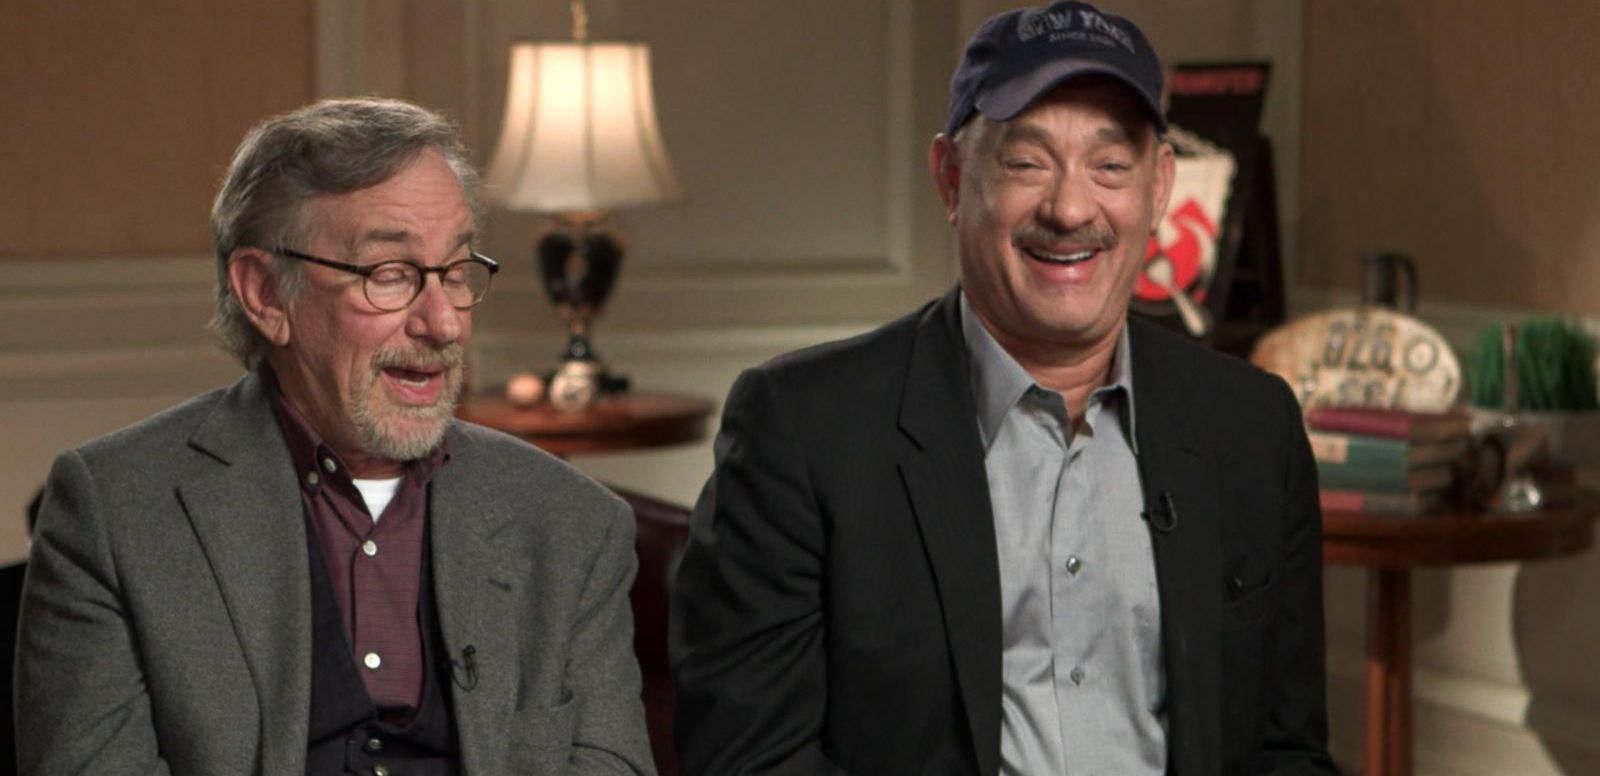 VIDEO: Tom Hanks and Steven Spielberg Describe Their Cold War Drama 'Bridge of Spies'